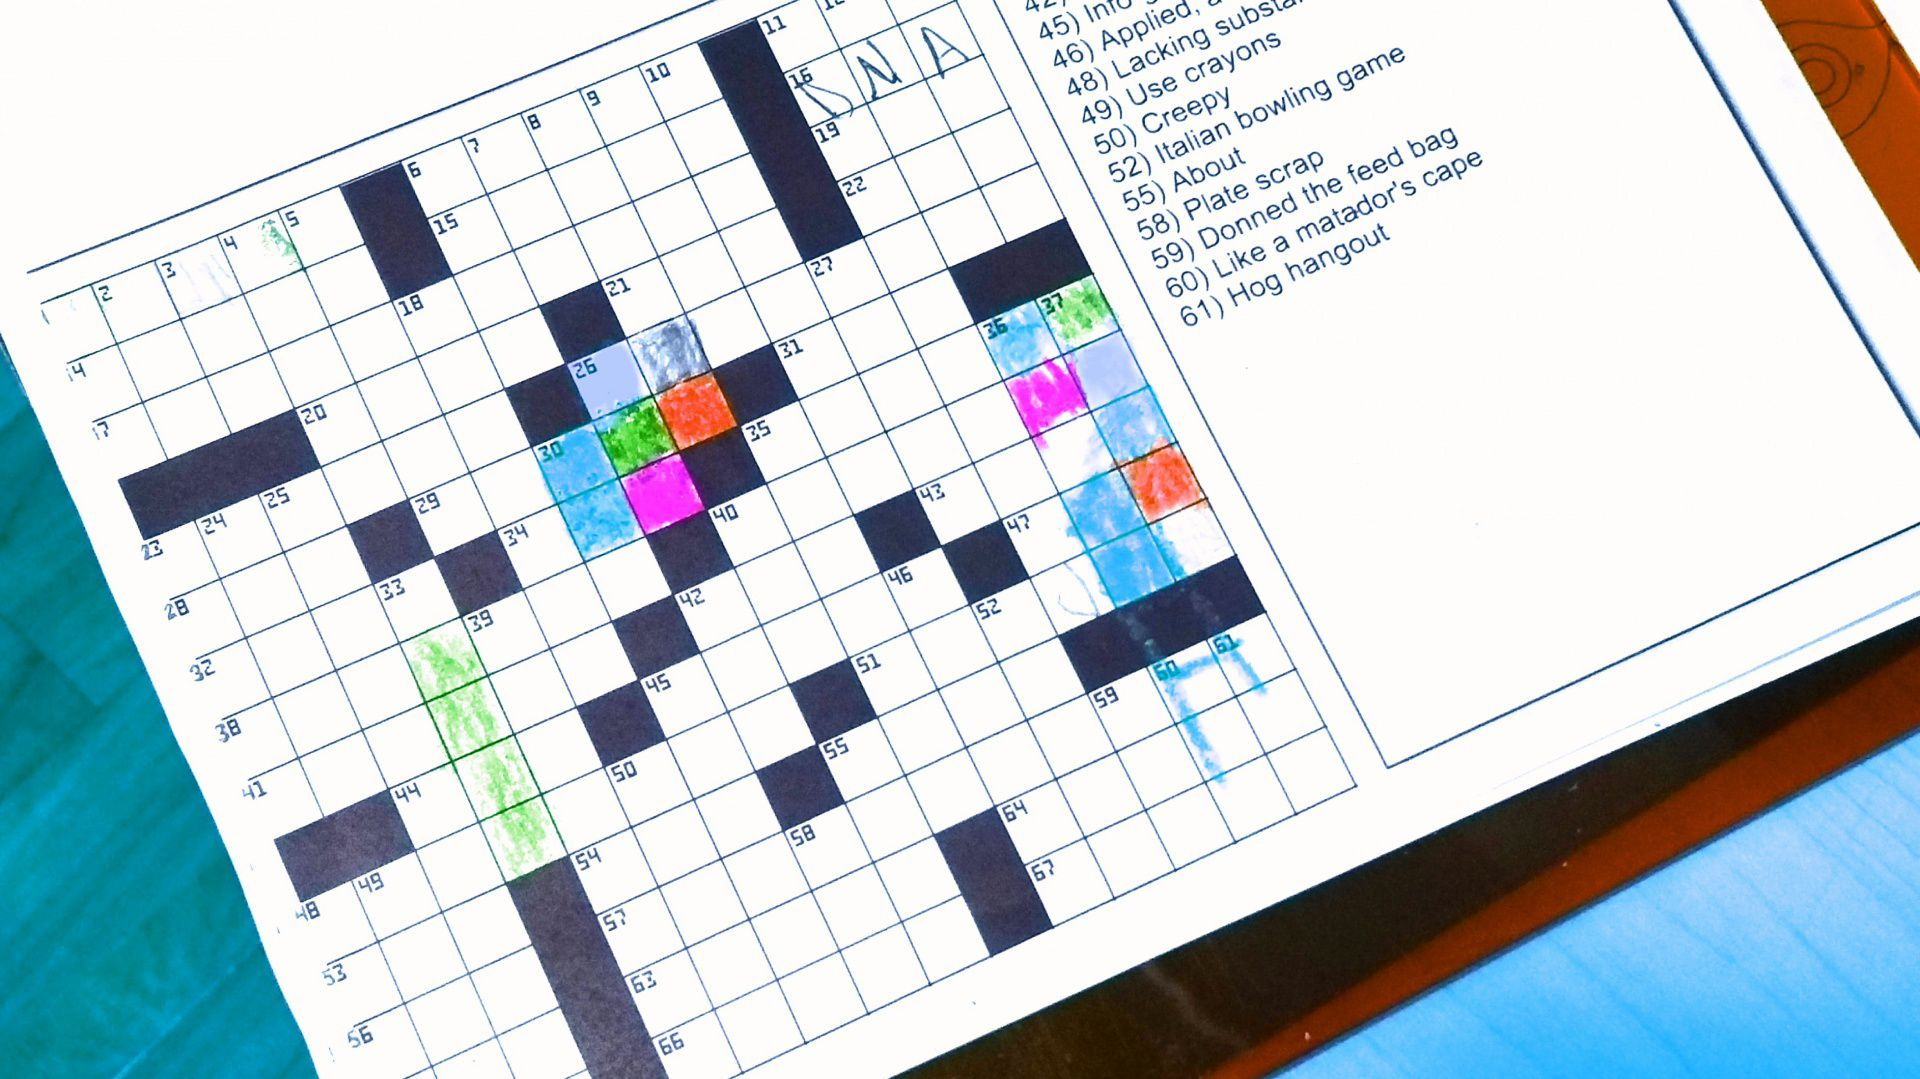 The Best Free Crossword Puzzles To Play Online Or Print - Newspaper Crossword Puzzles Printable Uk